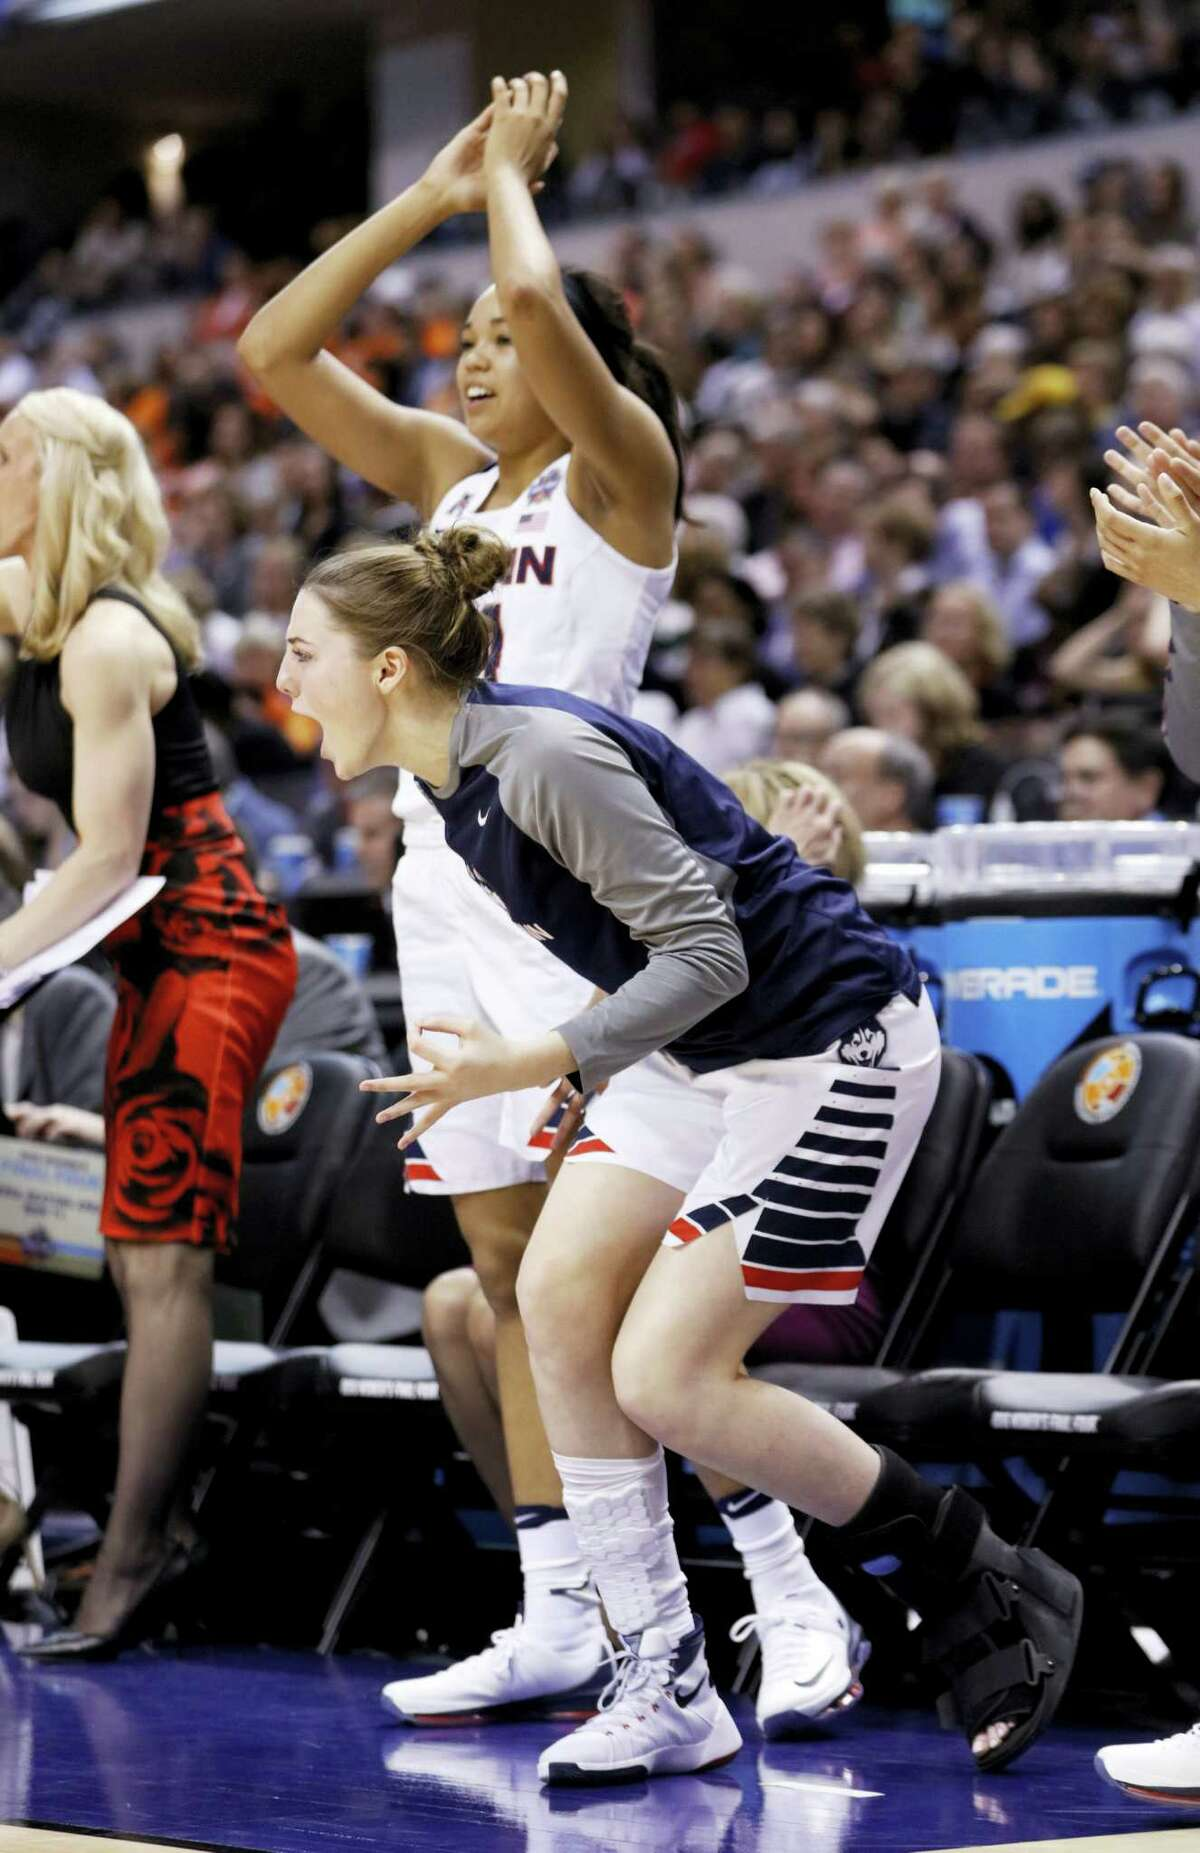 UConn's Katie Lou Samuelson cheers during the second half of Sunday night's national semifinal game against Oregon State. Samuelson suffered a season-ending broken foot.